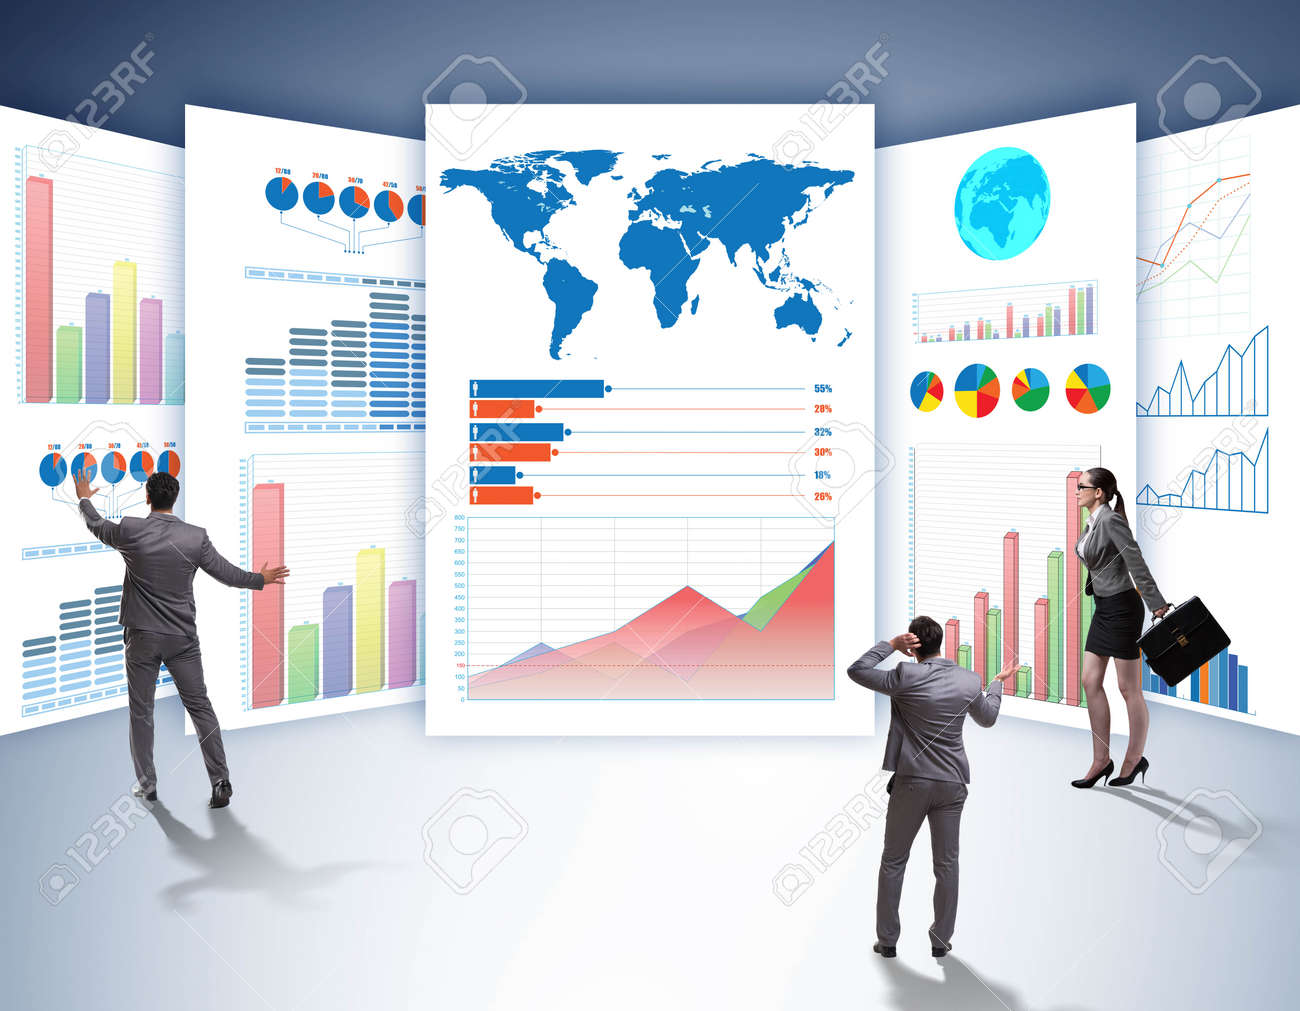 The concept of business charts and finance visualisation - 146865780